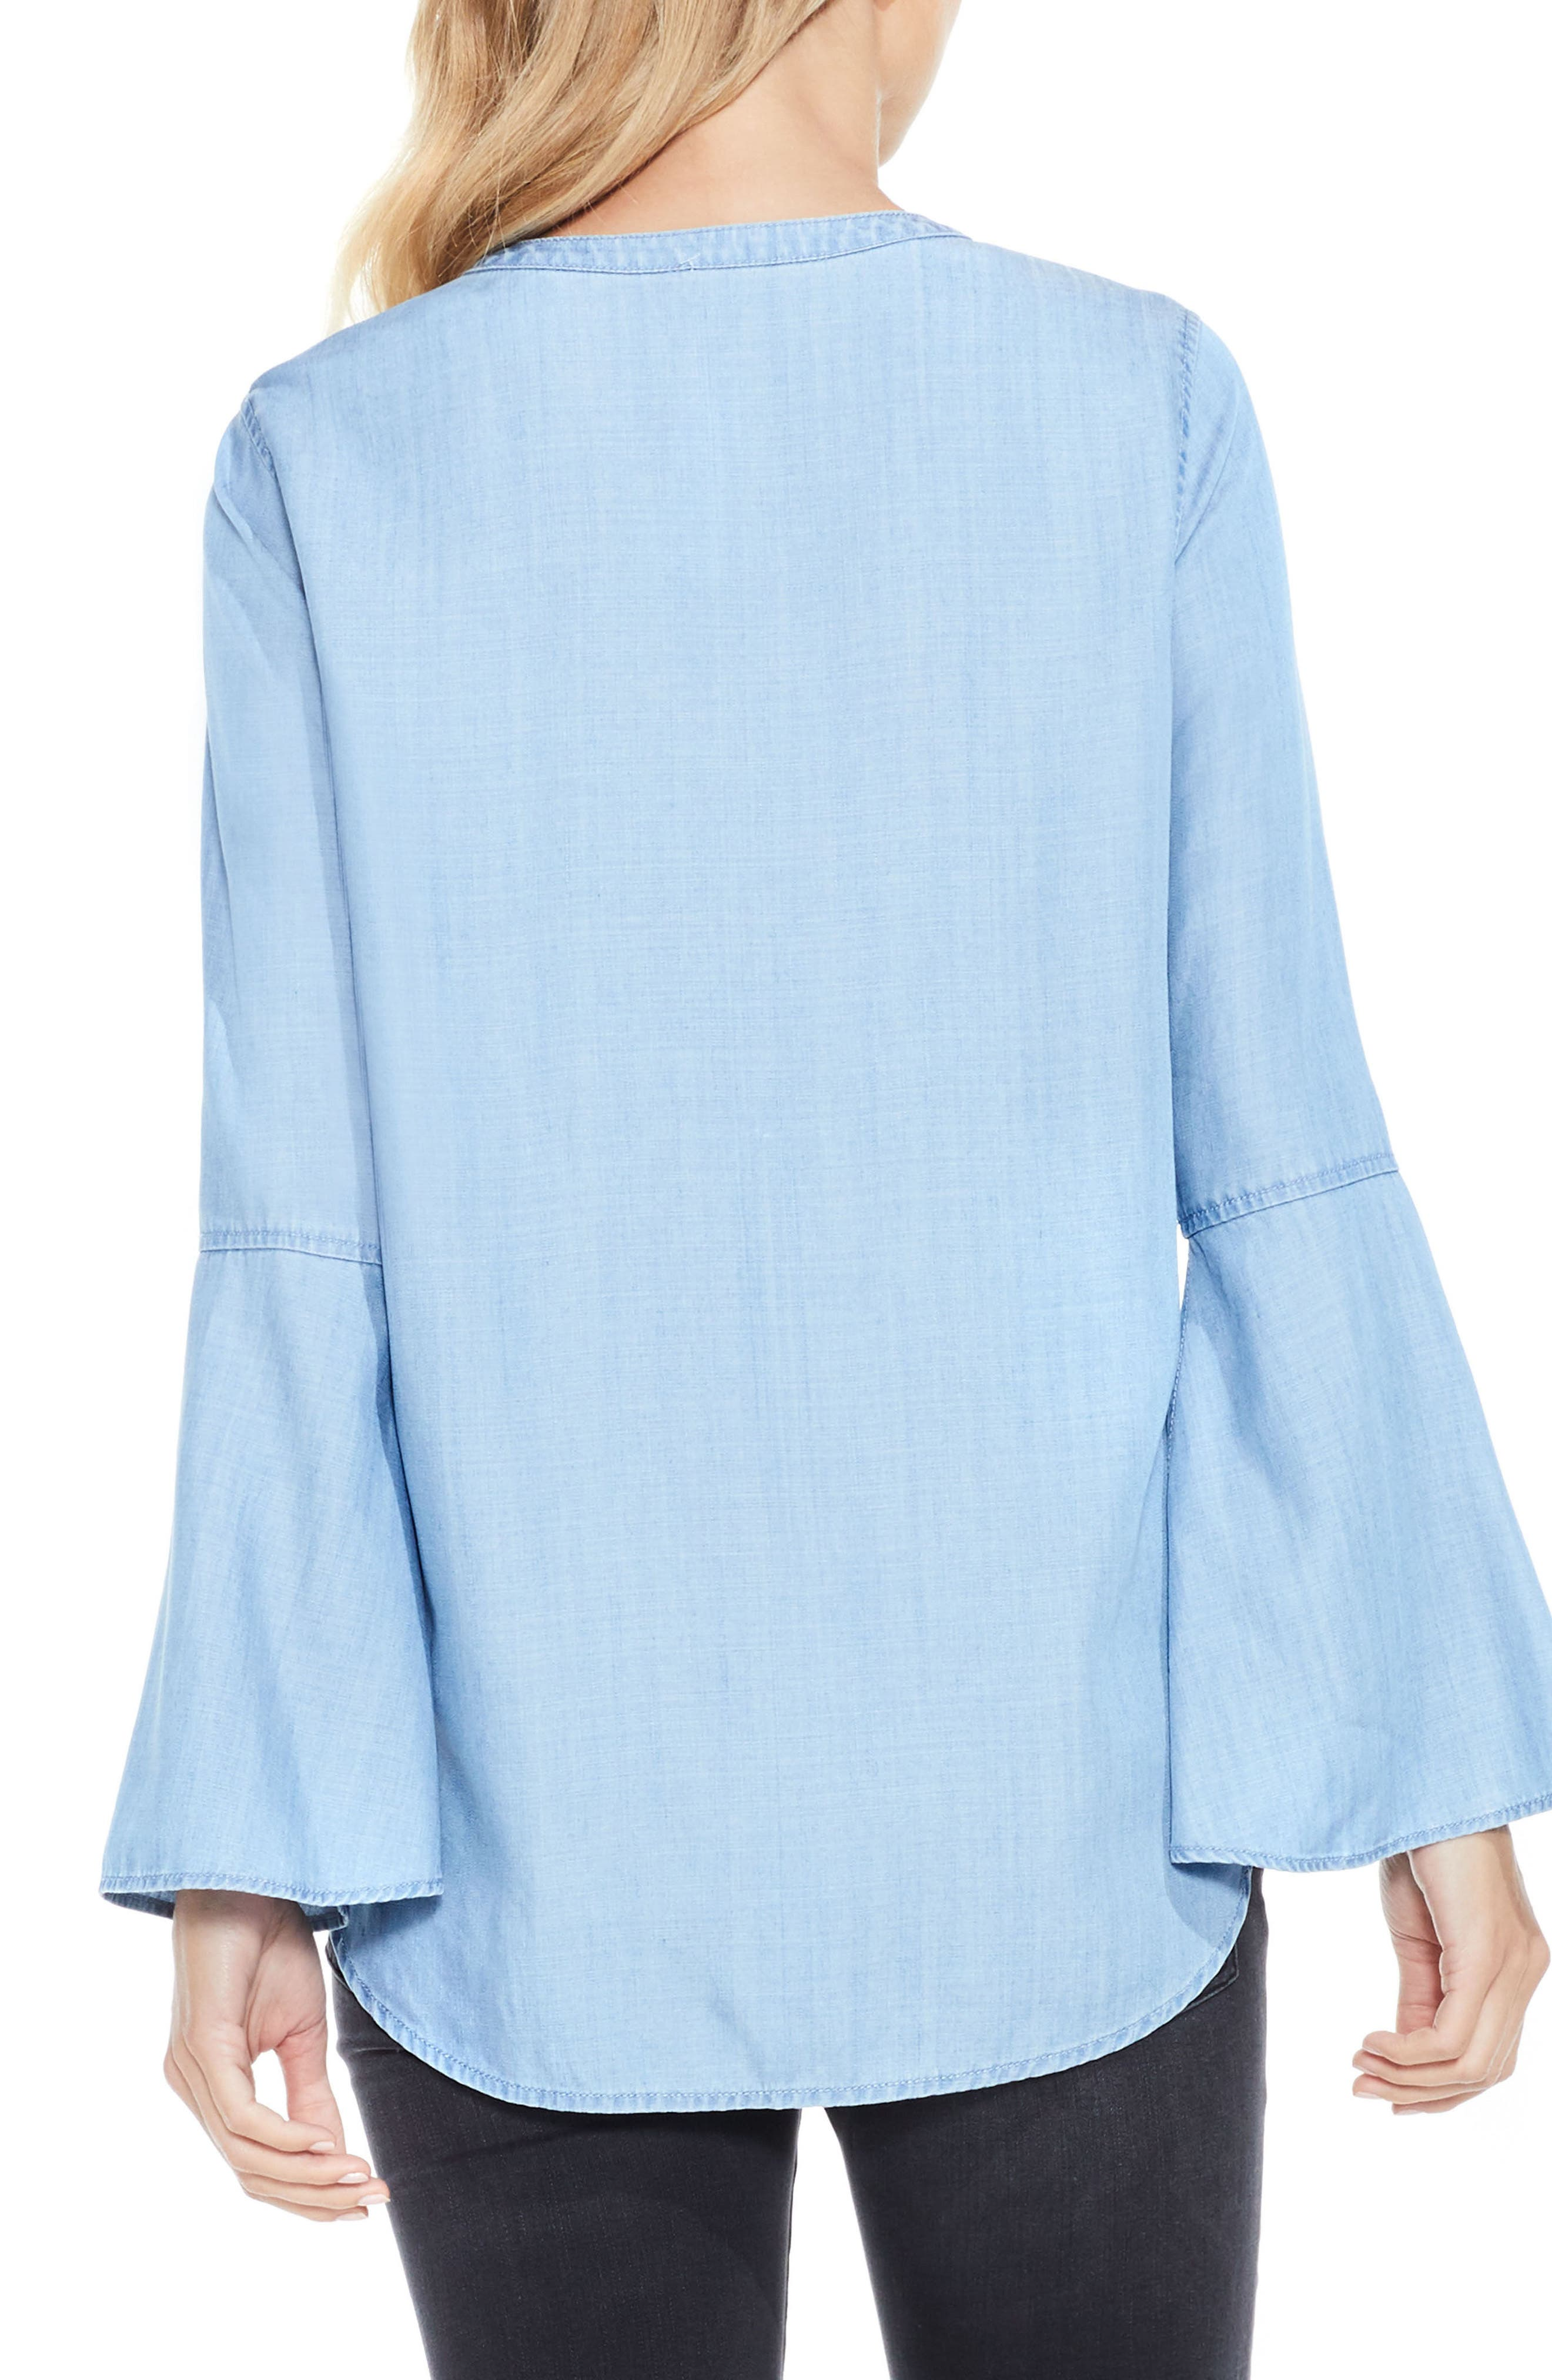 Bell Sleeve Chambray Blouse,                             Alternate thumbnail 2, color,                             410